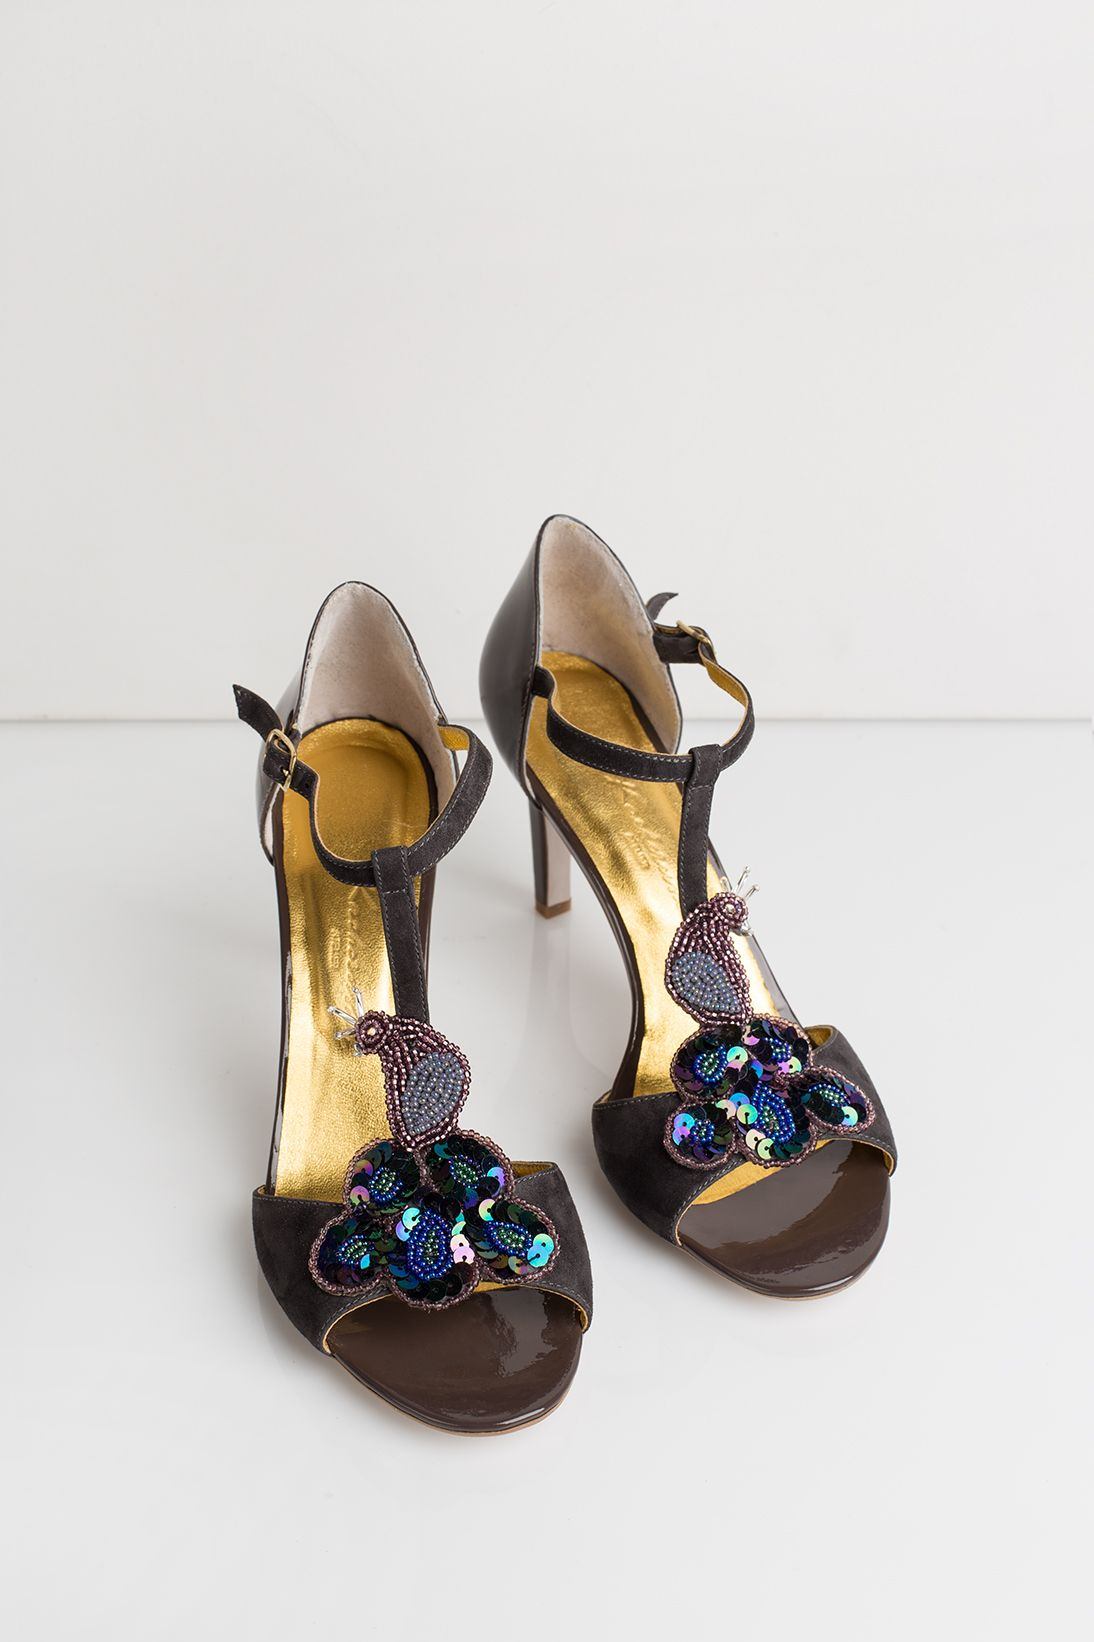 Chocolate patent leather hight heel sandals with decoration